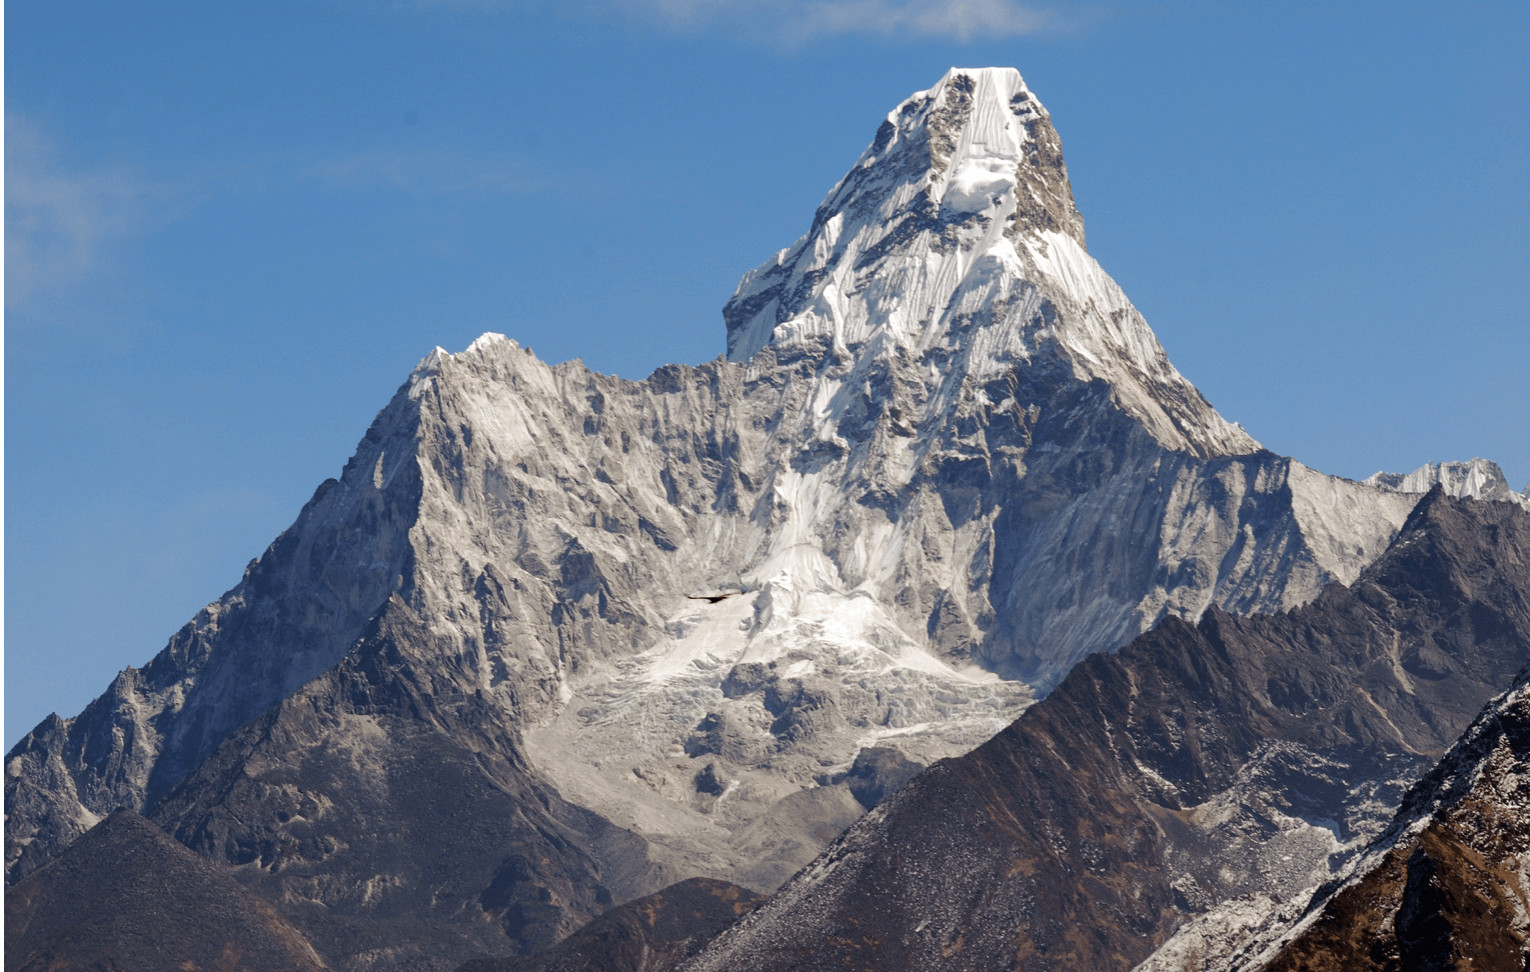 What is it about Ama Dablam?